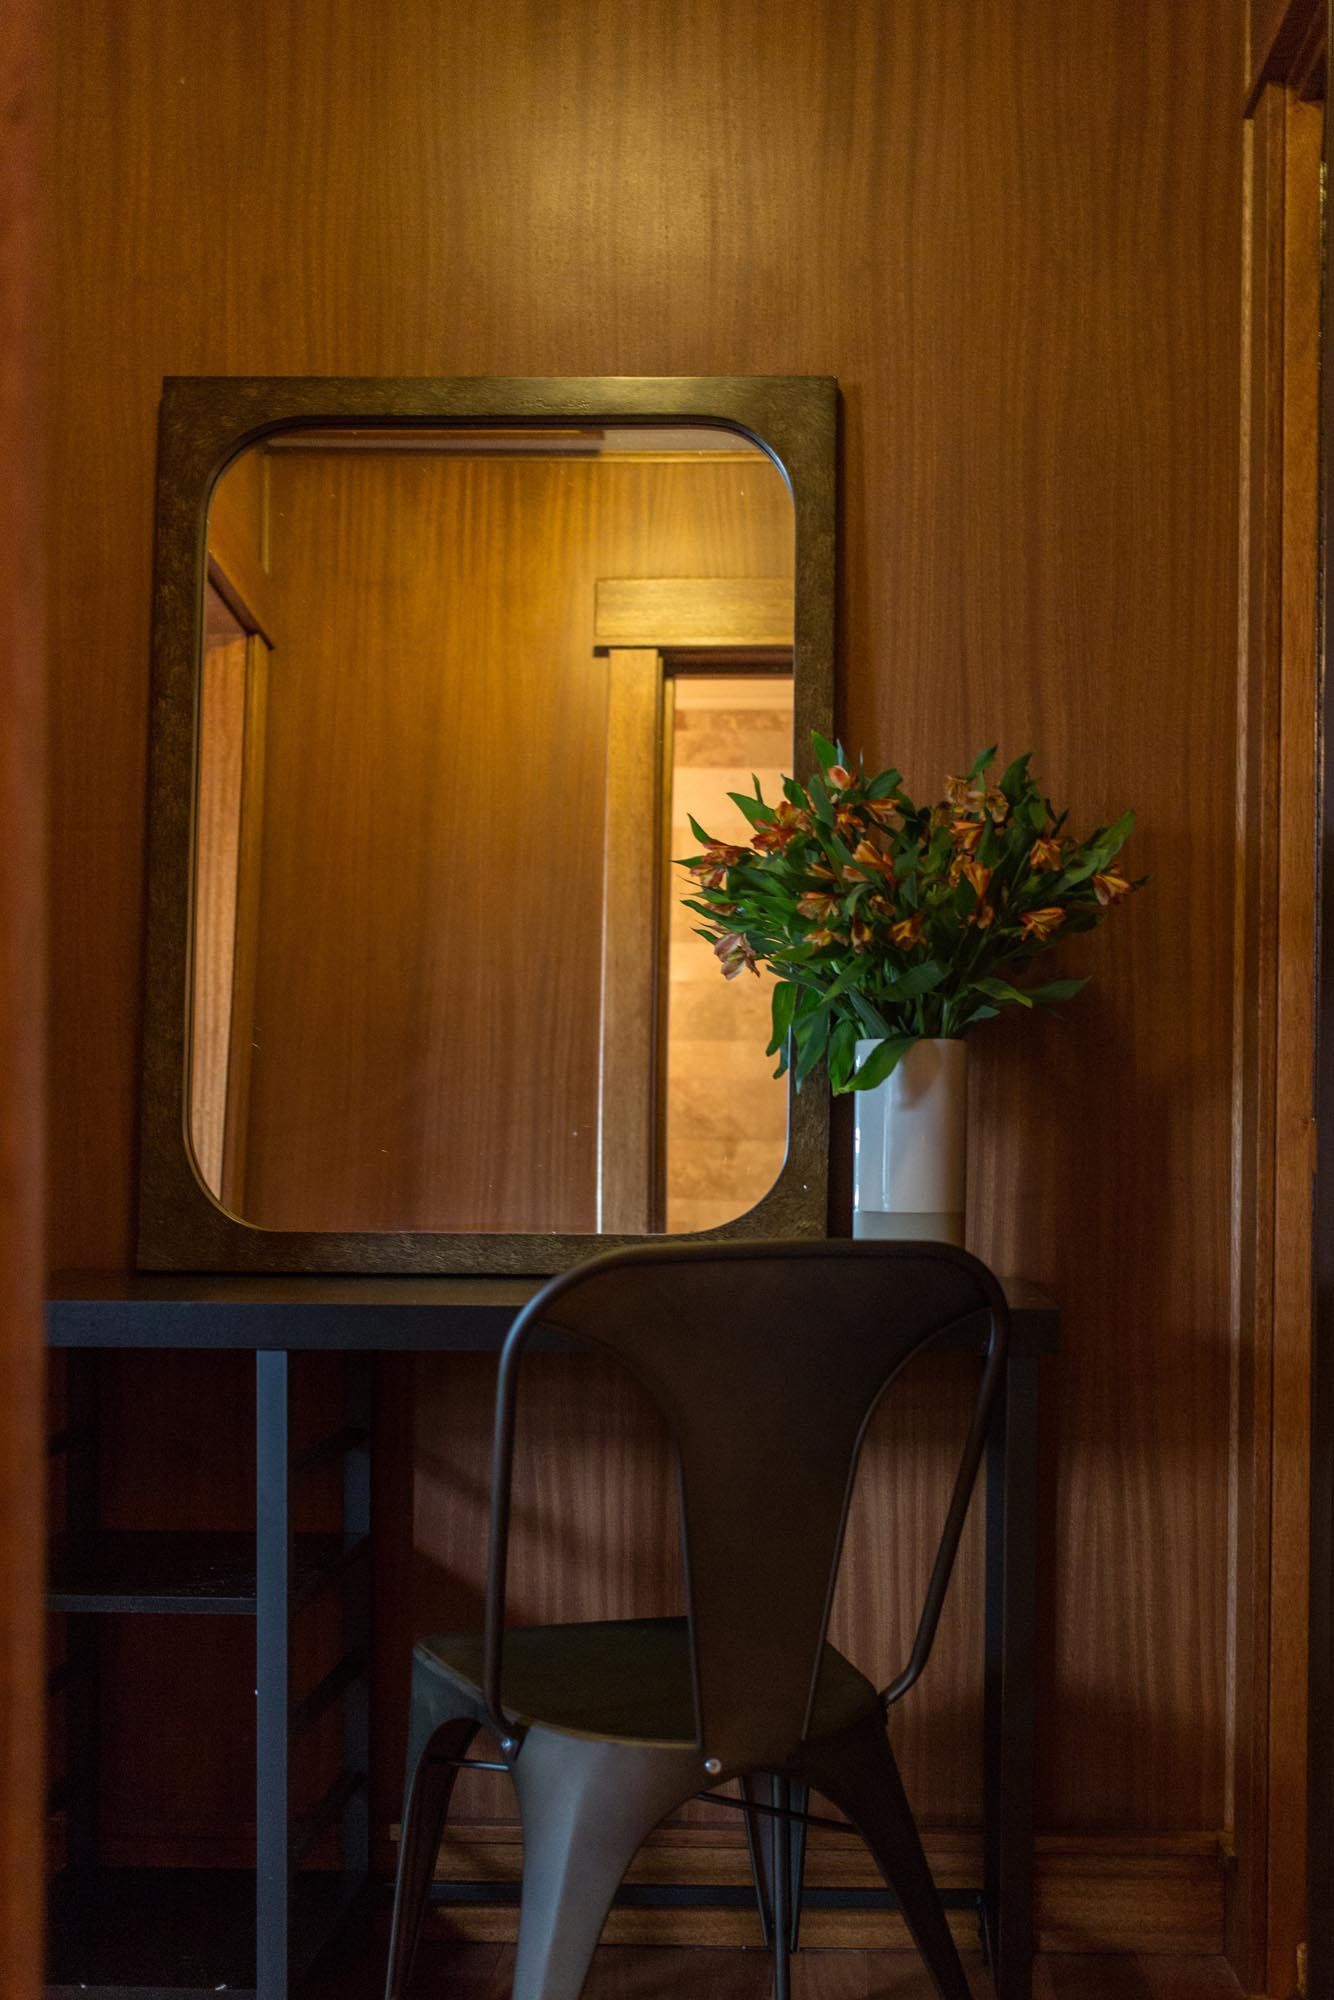 Small desk with chair, mirror and flowers